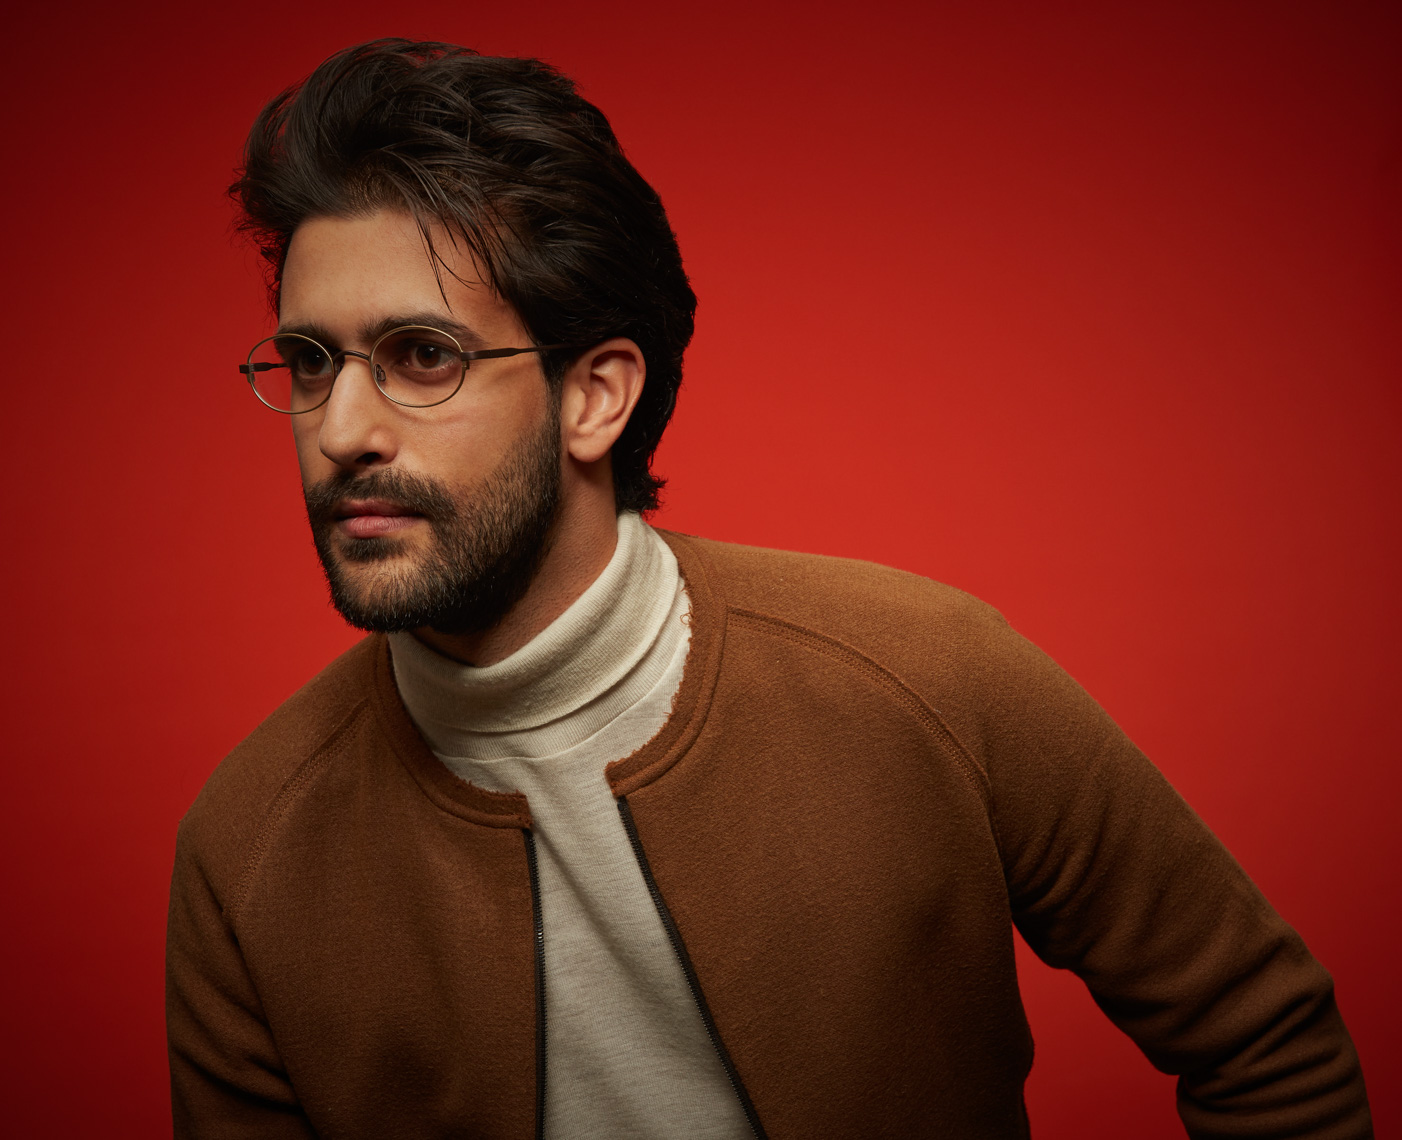 Dark haired man with beard and glasses wearing white turtleneck and camel jacket looking to the side